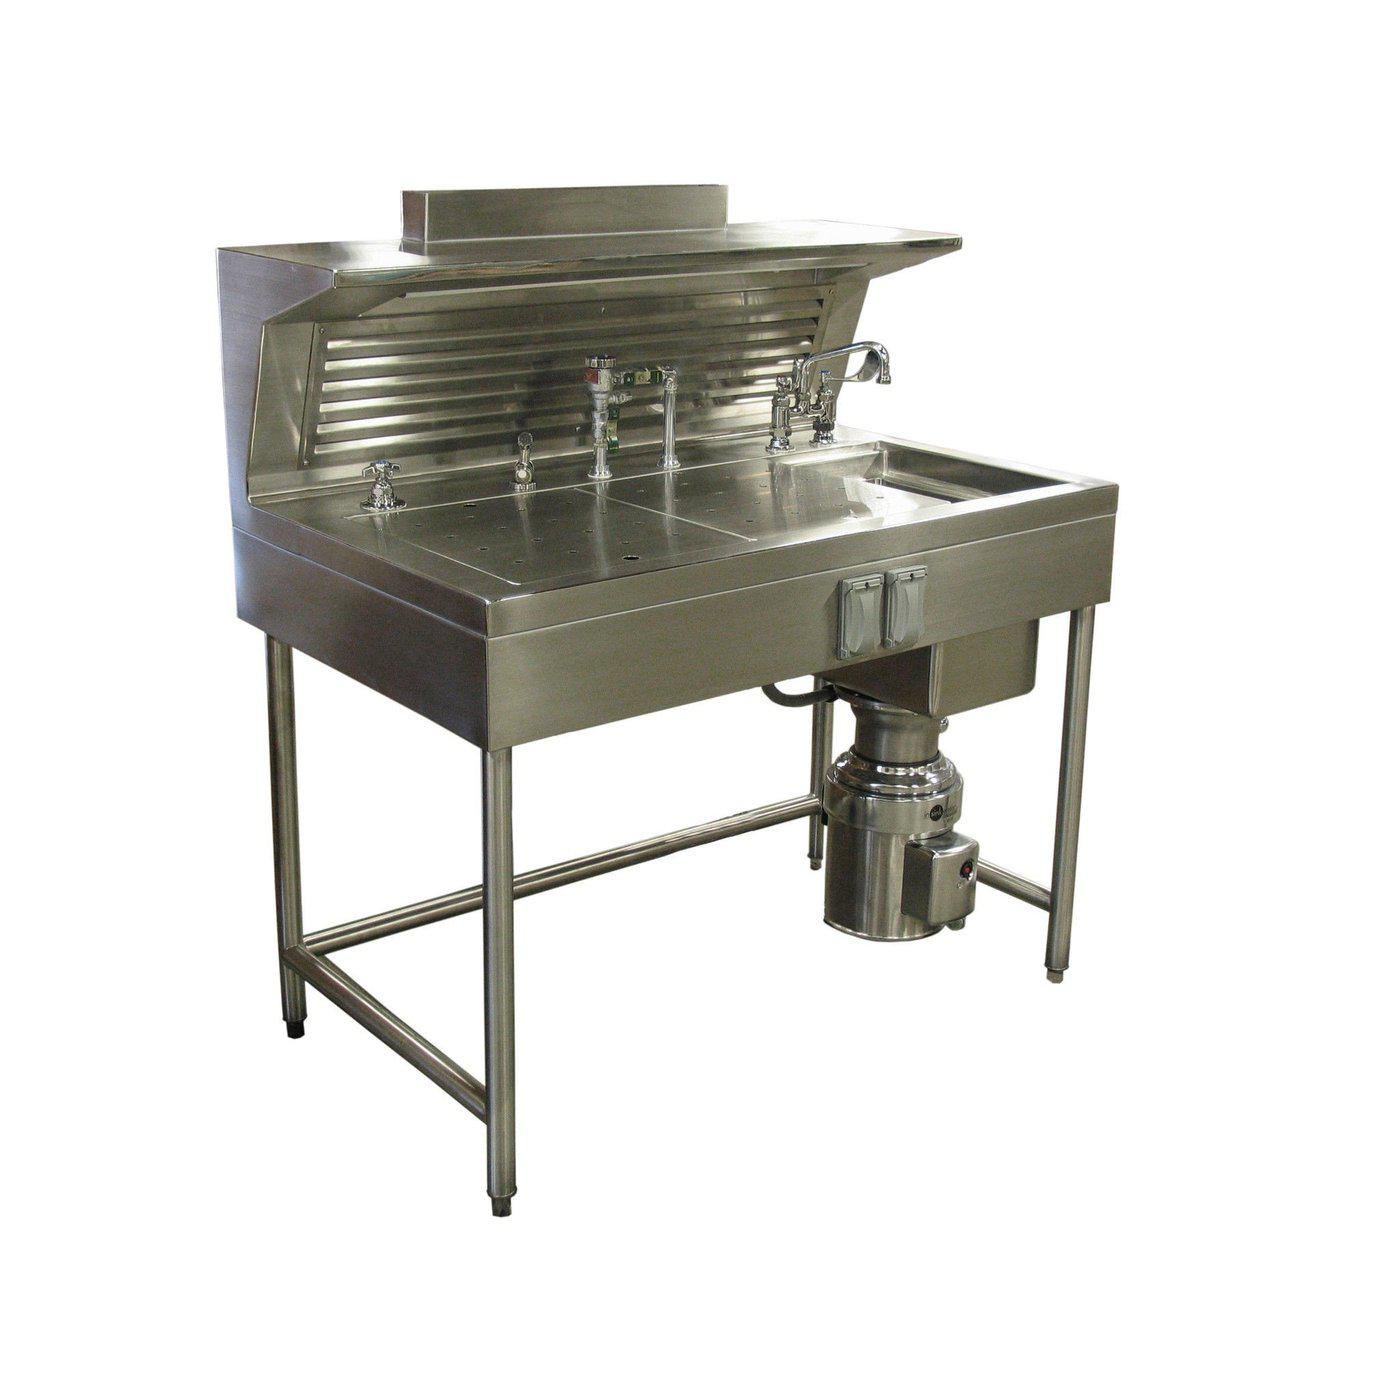 Pathology Workstation with Rear Exhaust-Pathology Grossing Stations-Mortech Manufacturing Company Inc. Quality Stainless Steel Autopsy, Morgue, Funeral Home, Necropsy, Veterinary / Anatomy, Dissection Equipment and Accessories